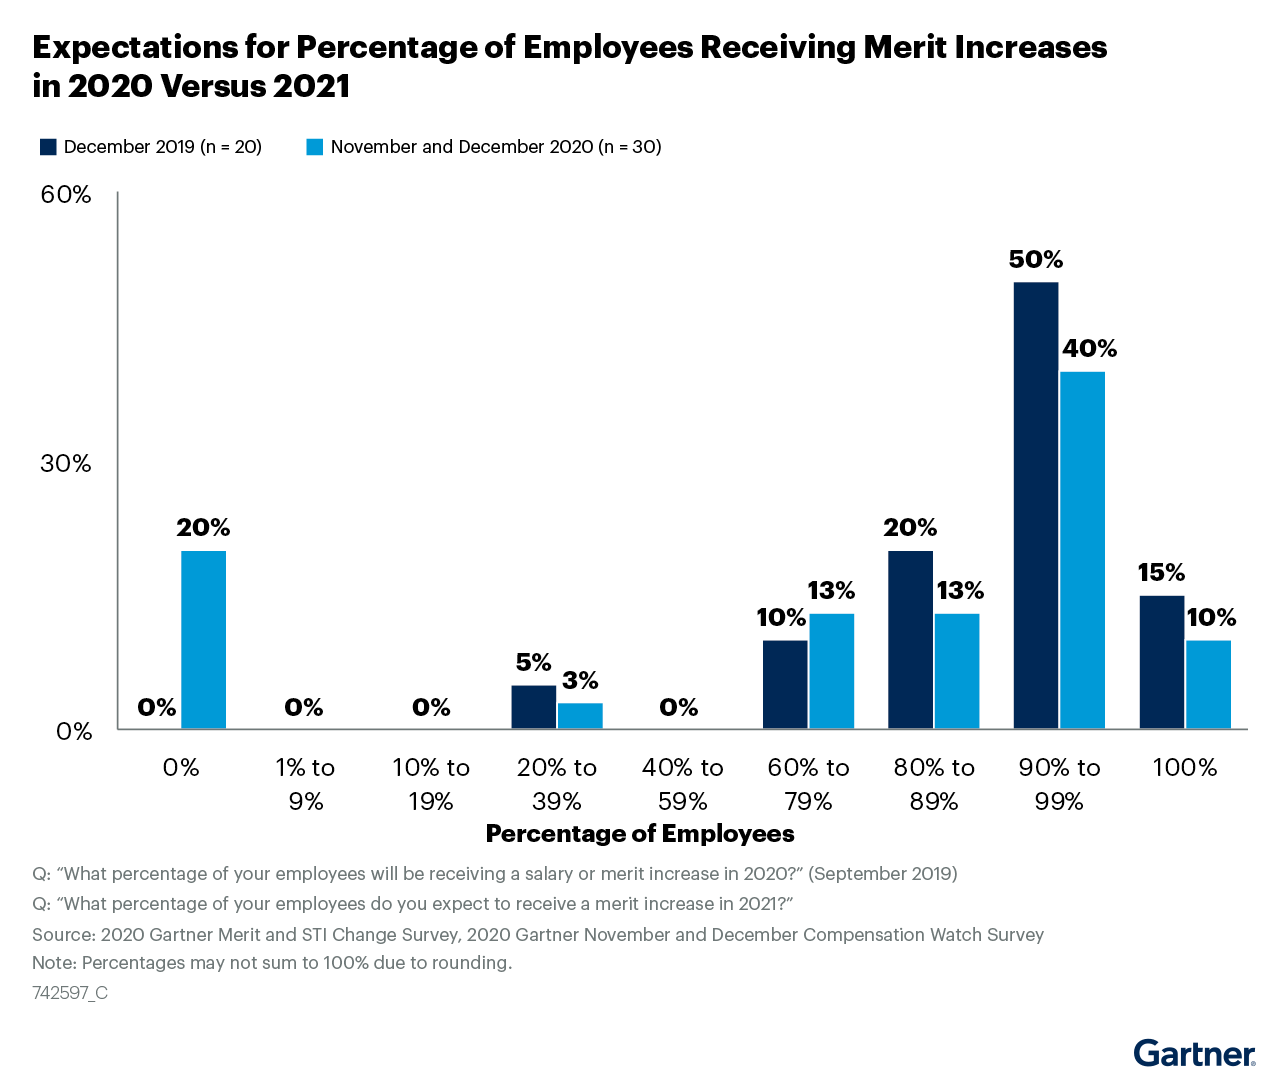 Figure 5: Expectations for Percentage of Employees Receiving Merit Increases in 2020 Versus 2021